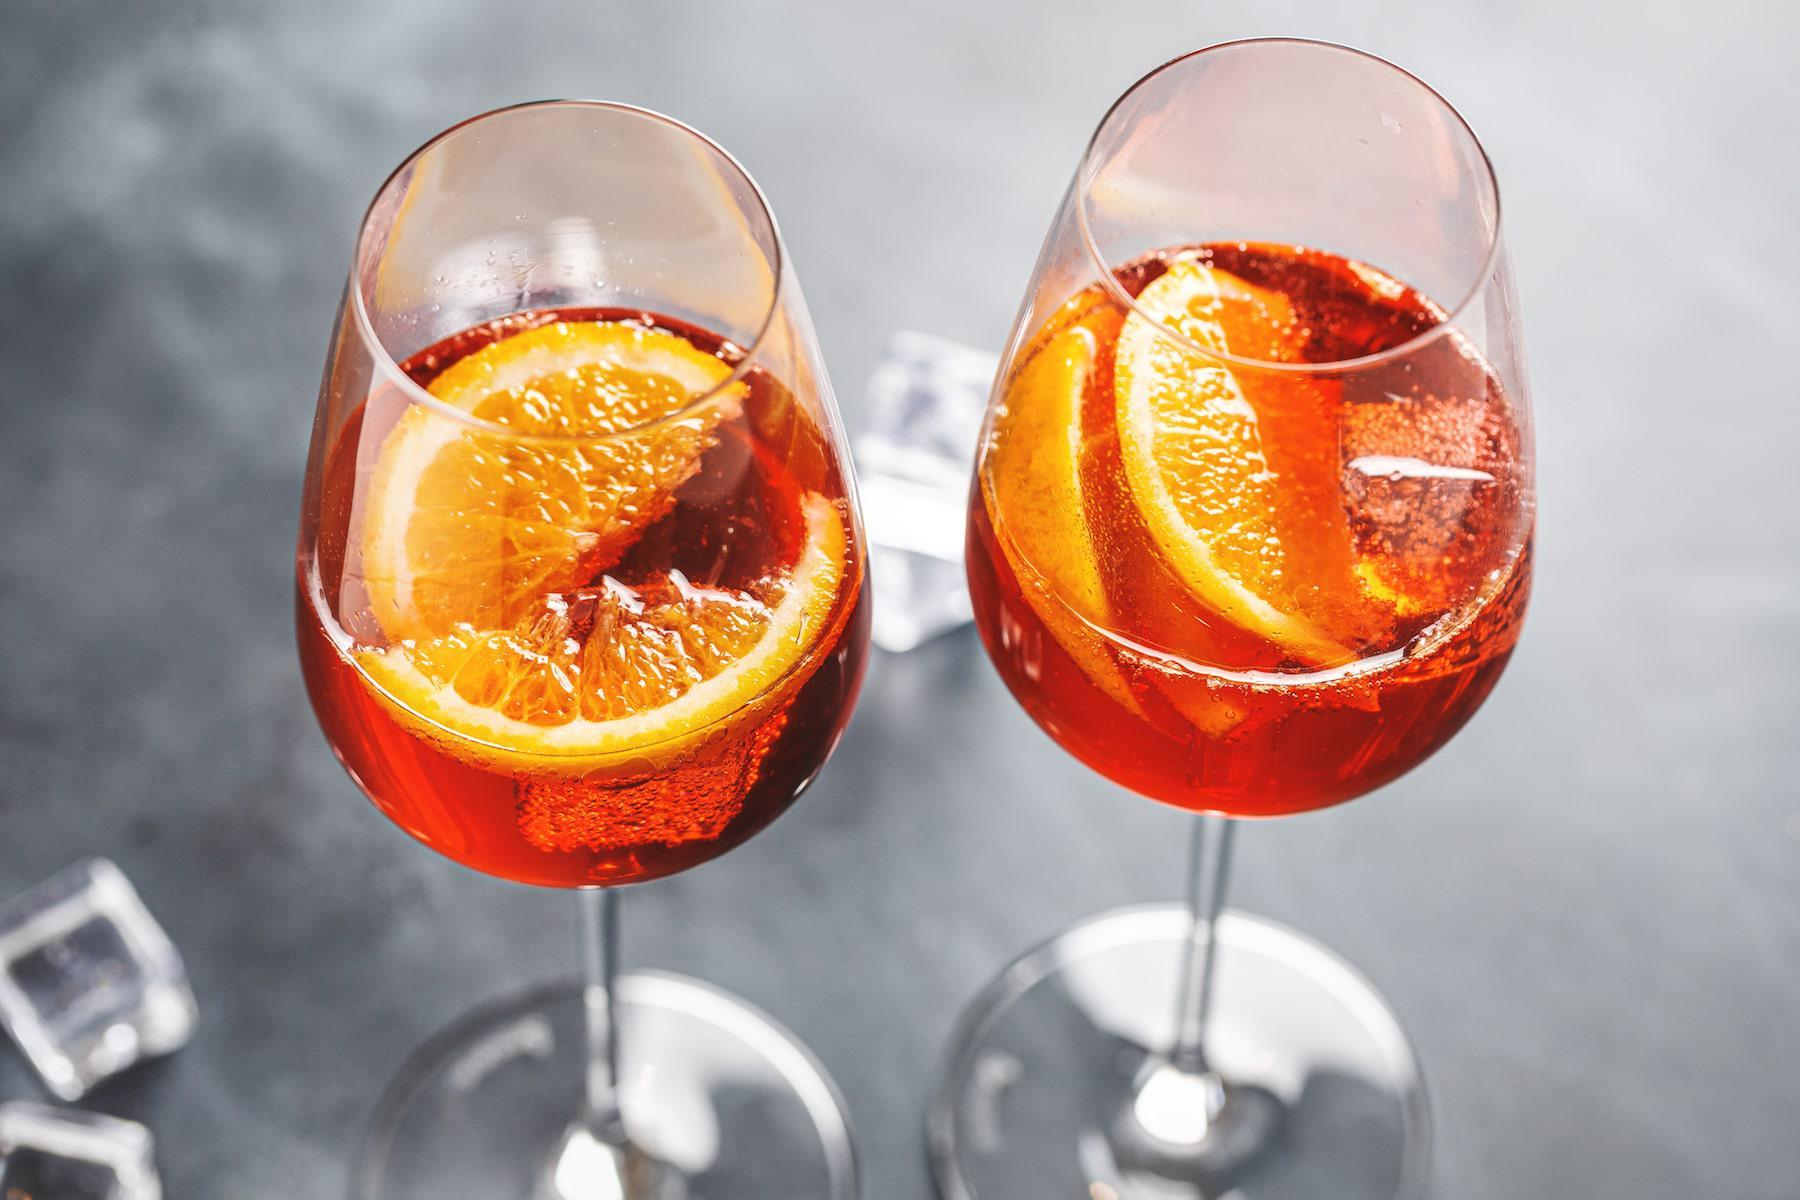 How To Make A Classic Aperol Spritz For Springtime Sipping photo